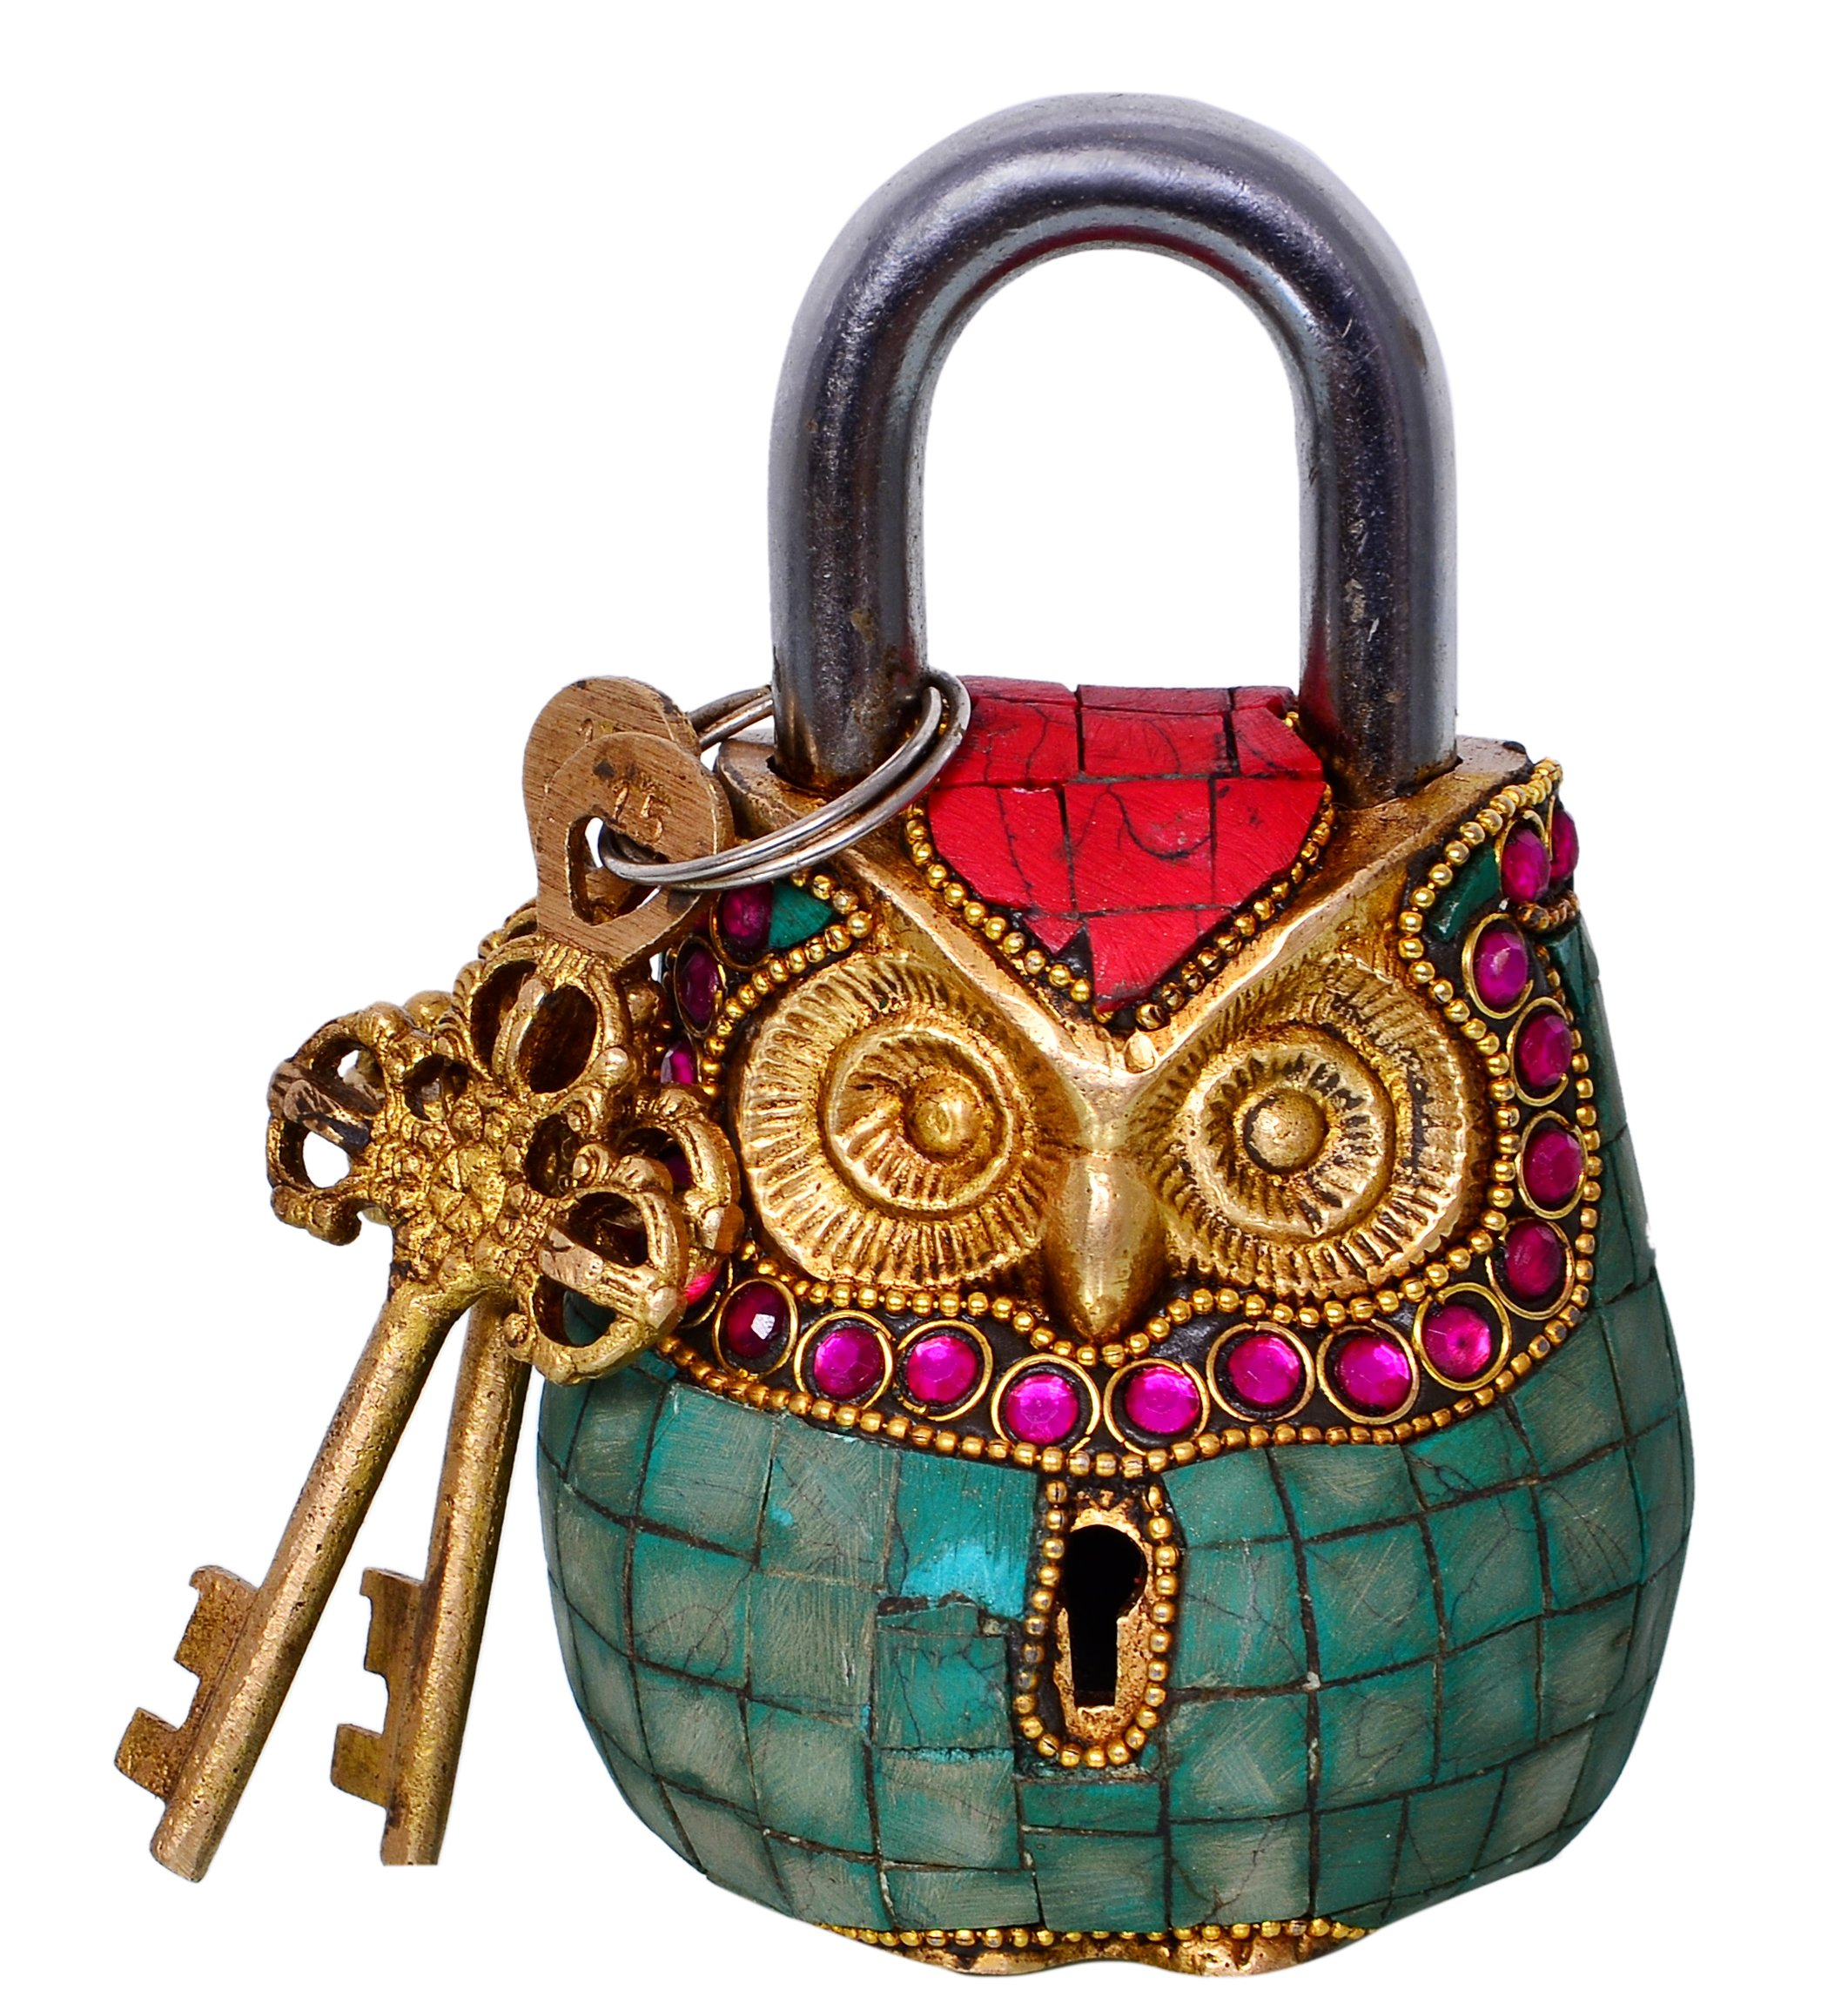 Purpledip Owl Shape Brass Lock Padlock: Handmade Antique Design With Colorful Gemstone Work; Unique Collectible Combination Of Style & Security (10684)